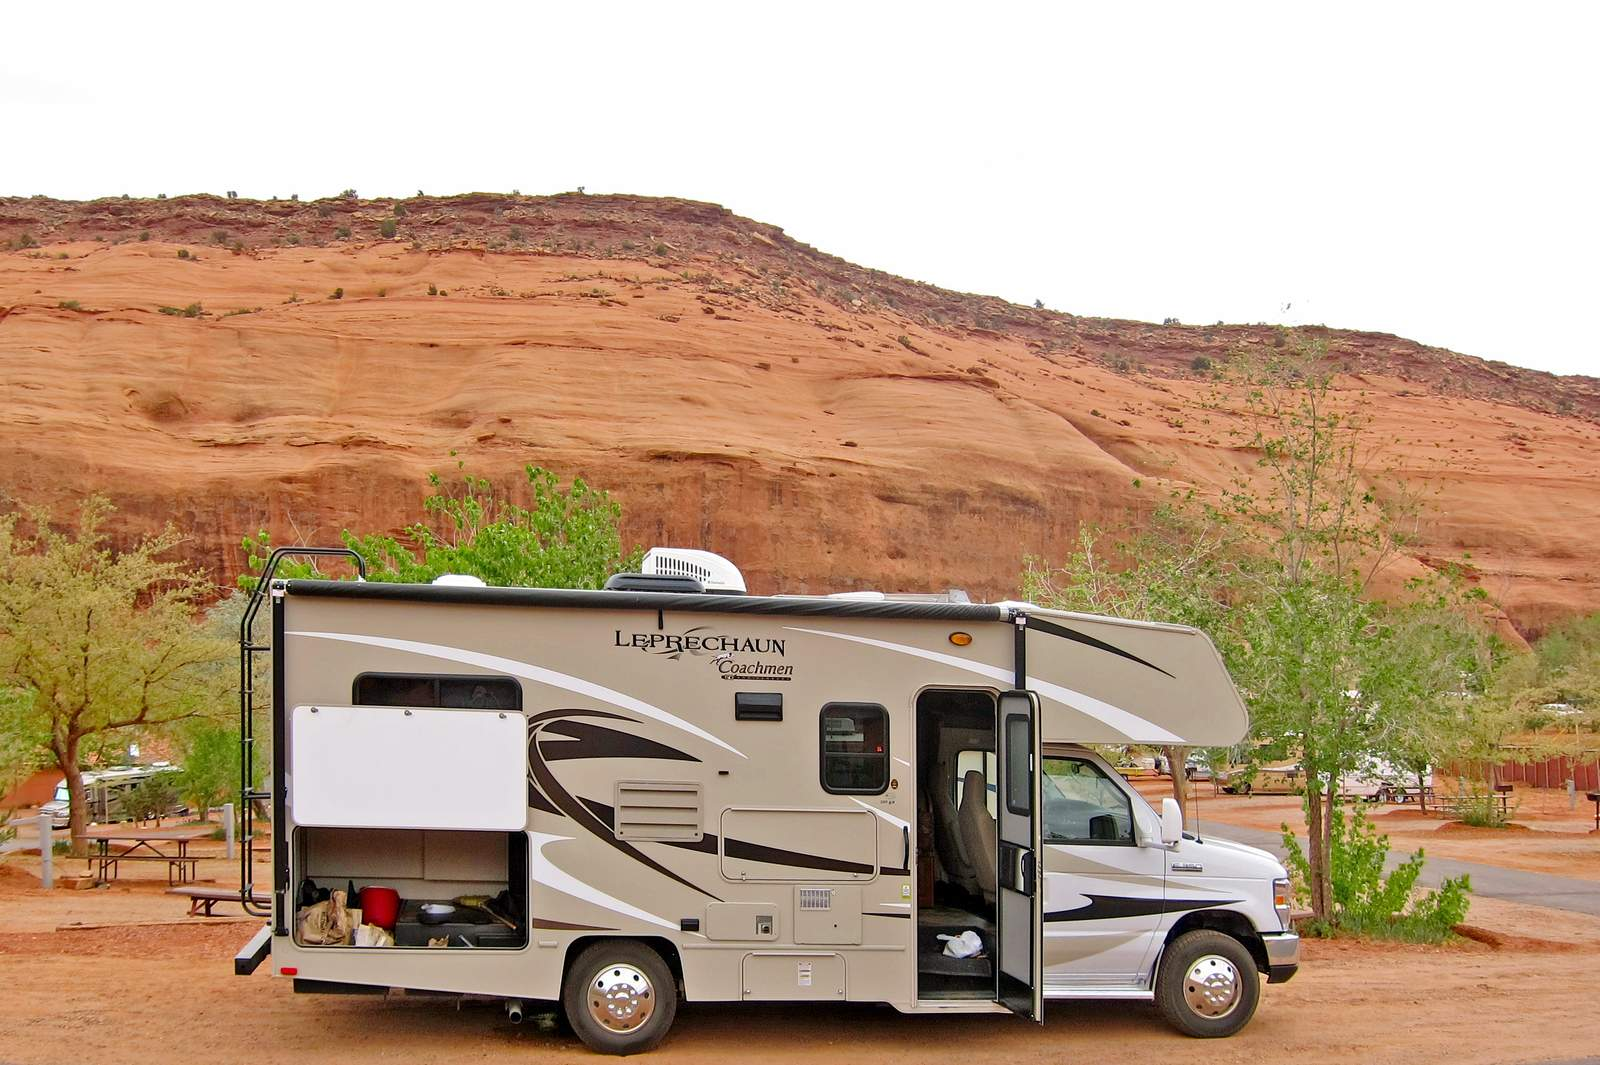 Usa Küche Wohnmobile Usa, Road Bear Rv: Motorhome C 22-24 | Canusa